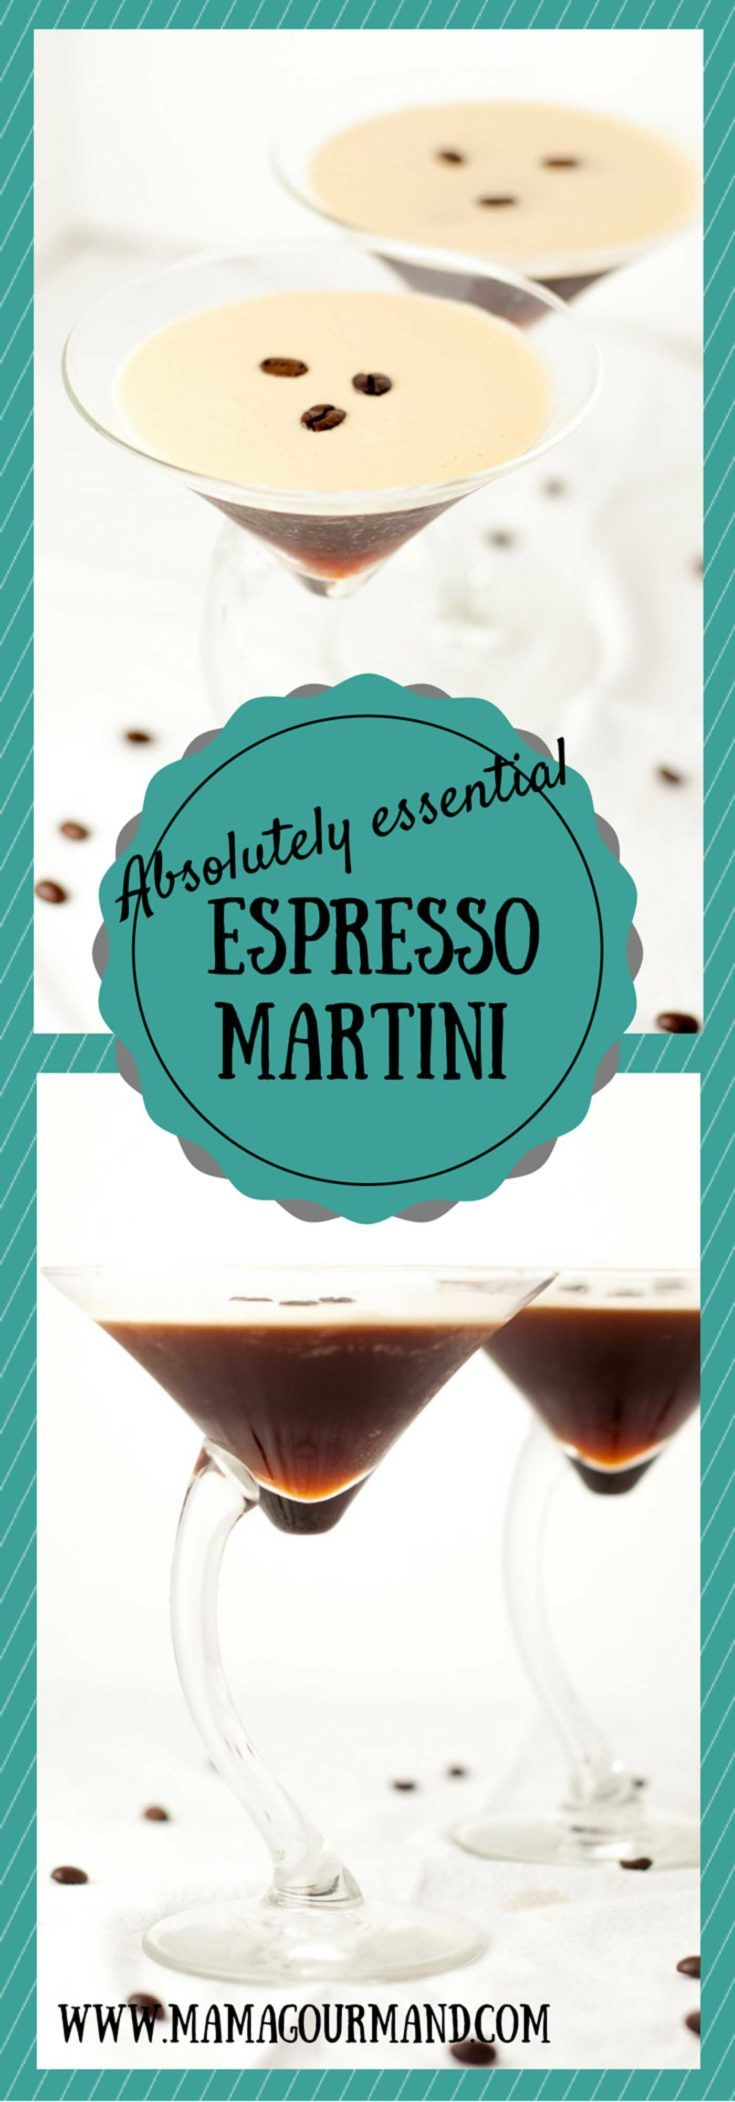 The Absolutely Essential Espresso Martini is the perfect cocktail for any coffee lover. It is the perfect balance of flavors, not overly sweet, and is always a huge hit! http://www.mamagourmand.com